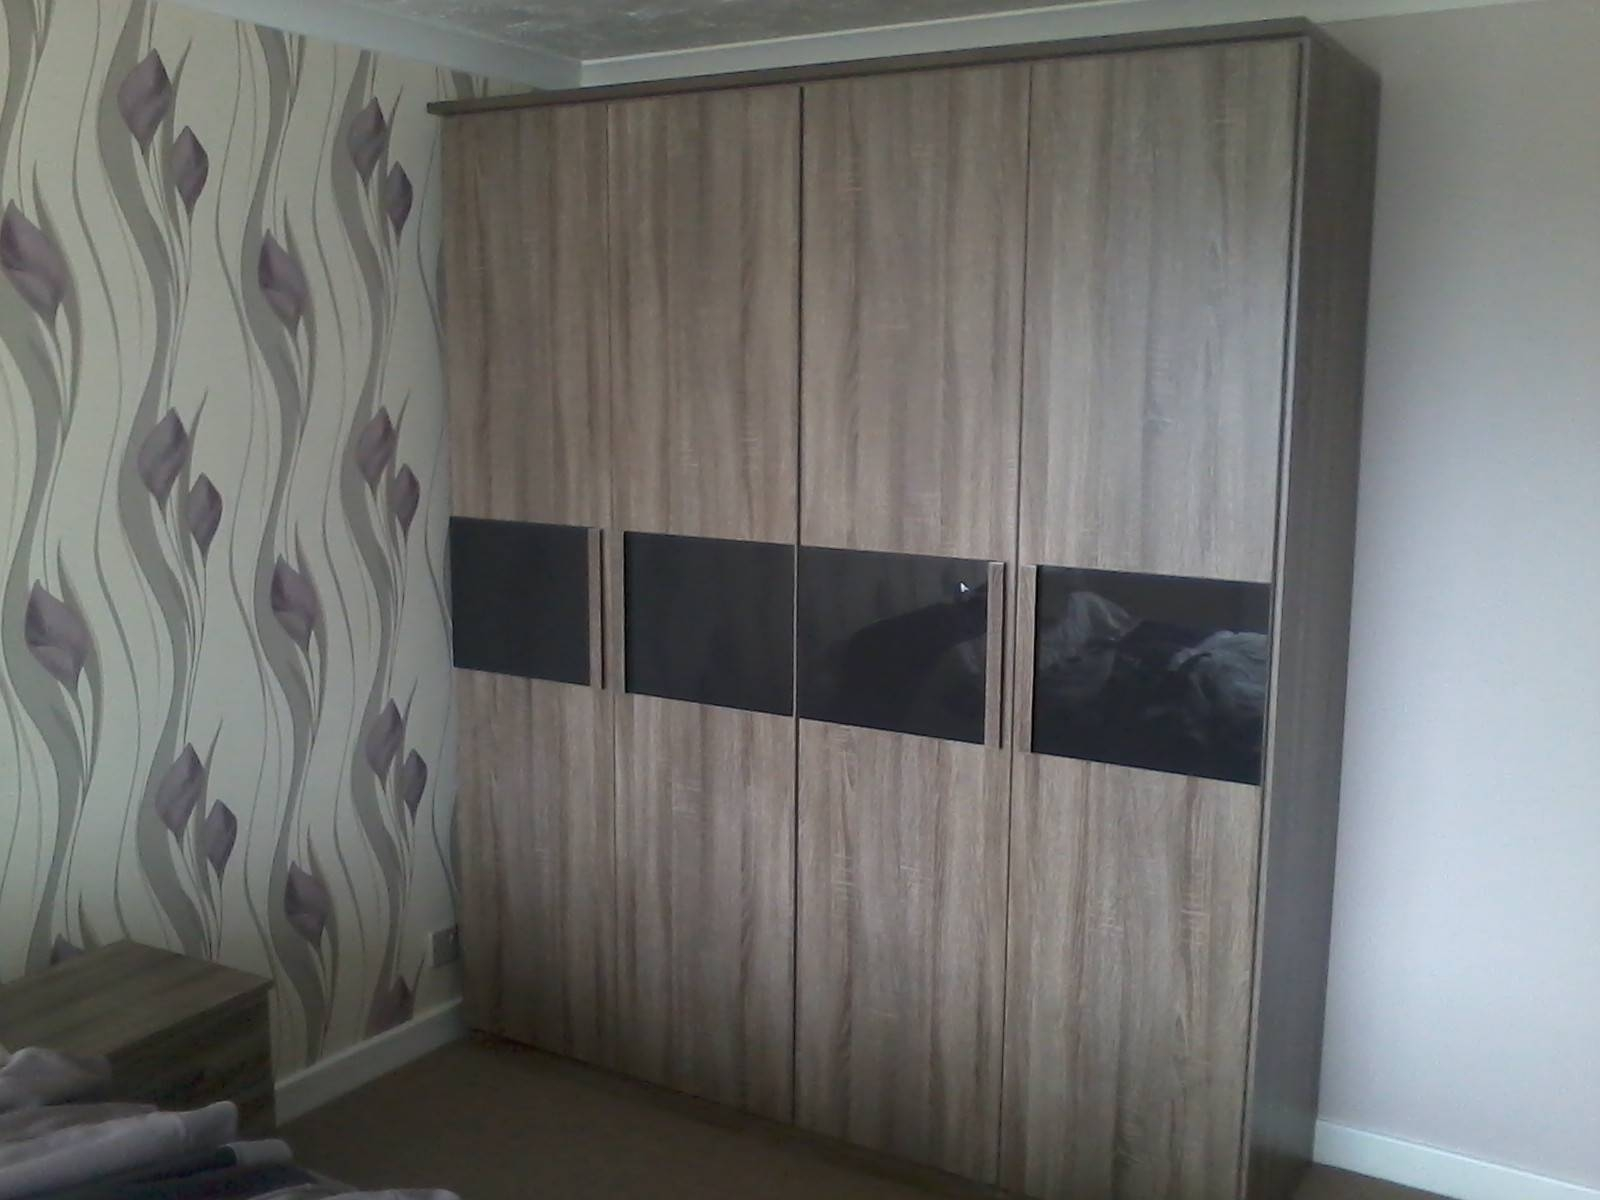 Rauch Furniture | Narbonne 2 Sliding Door Wardrobe | Bedsdirectuk pertaining to 2 Sliding Door Wardrobes (Image 11 of 15)